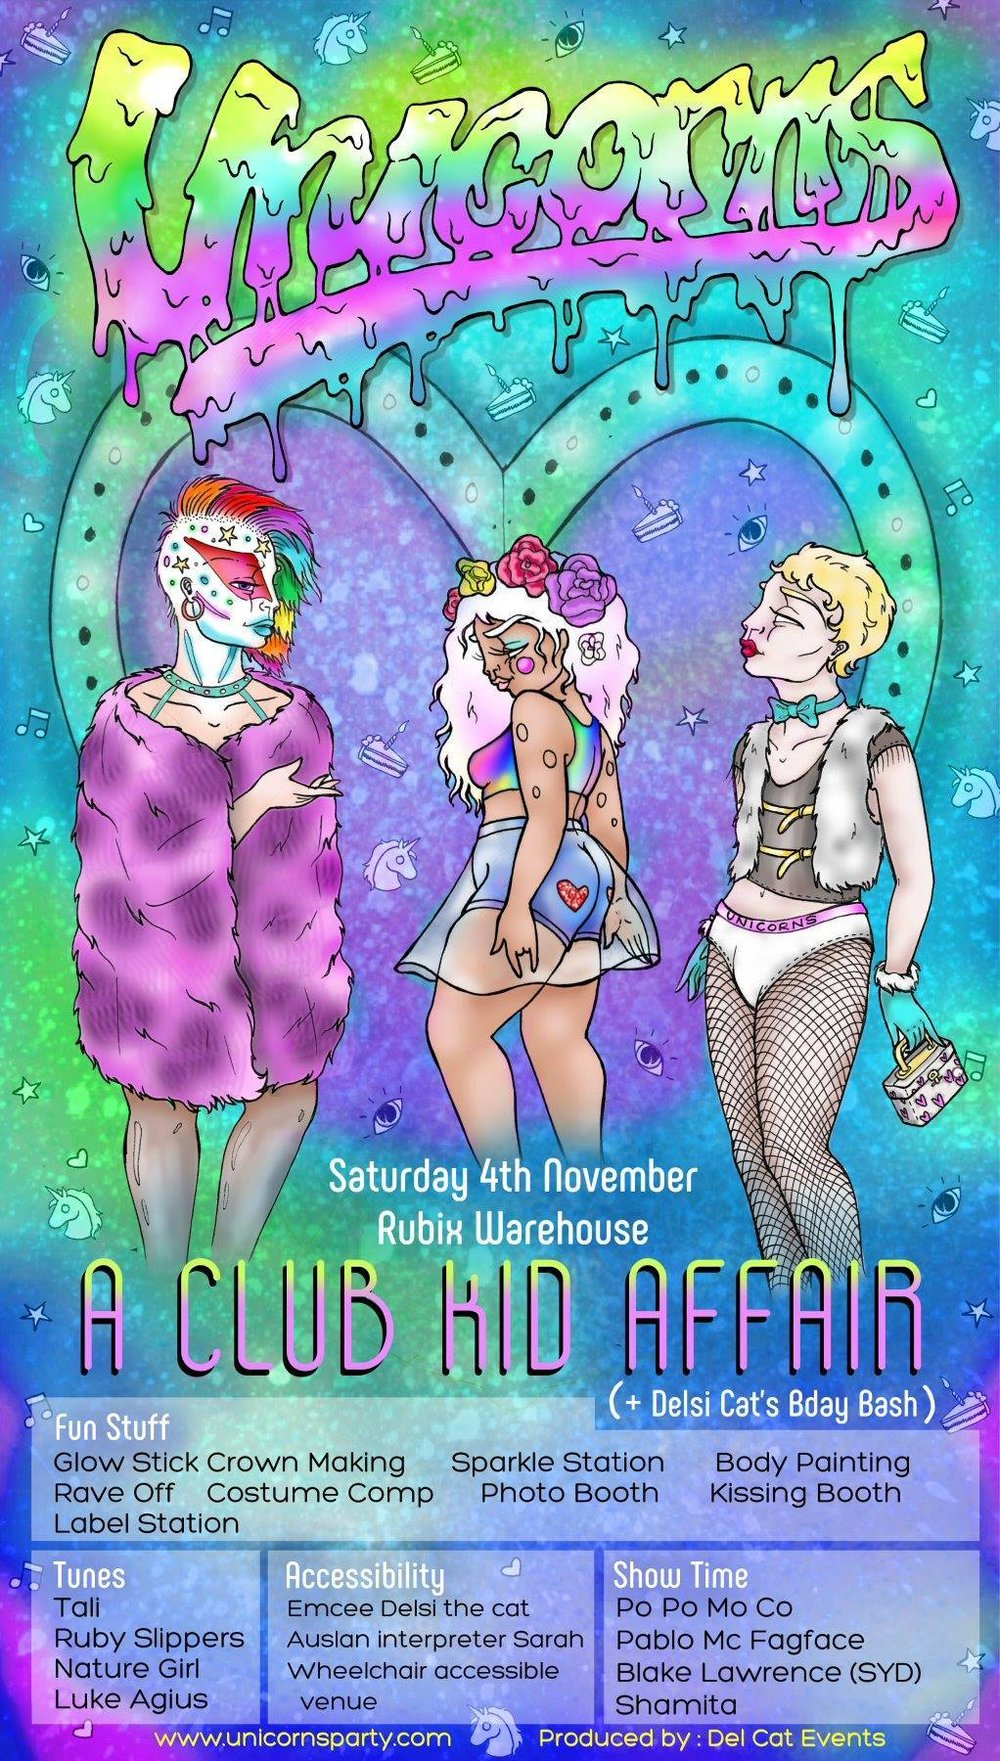 Unicorns - A Club Kid Affair (MELB) - Saturday 4 November 2017Rubix Warehouse8pm - 3amSOLD OUT